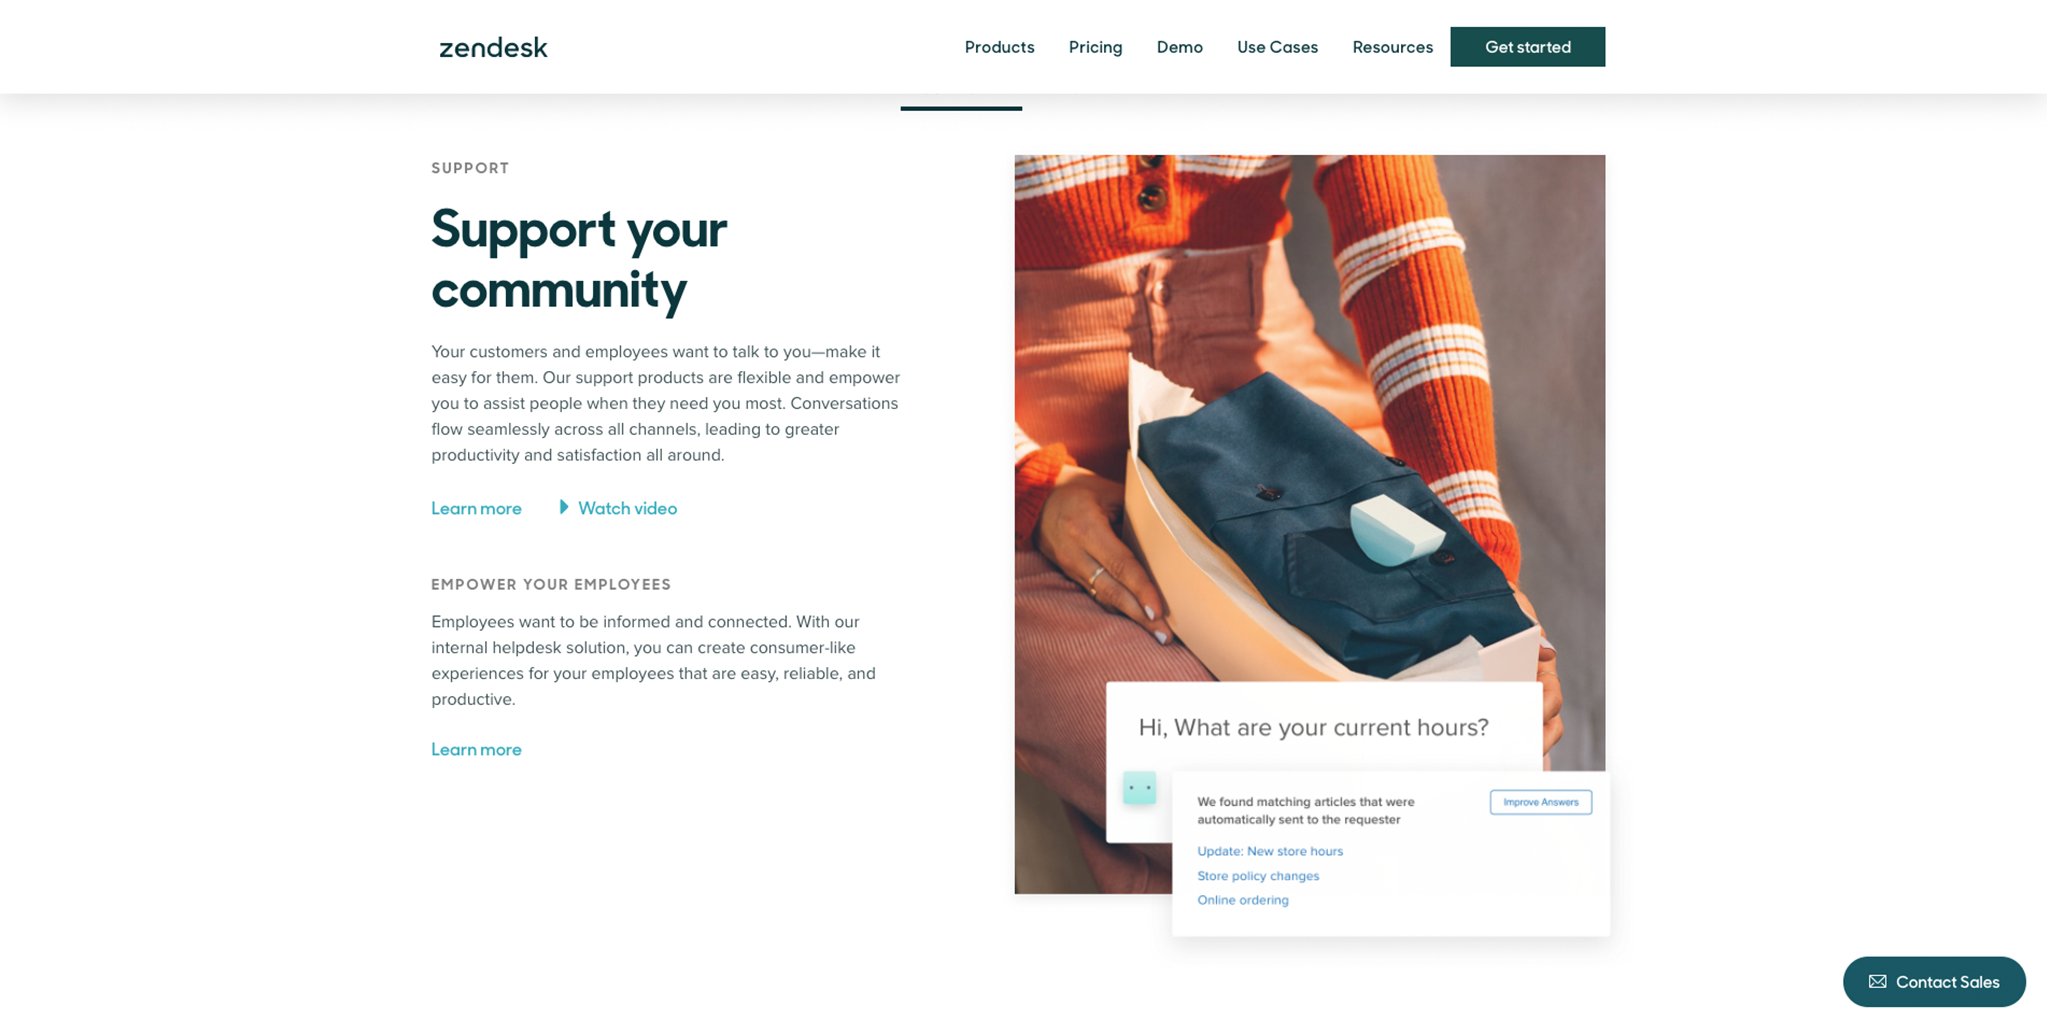 Screenshot of Zendesk image with geometric shape